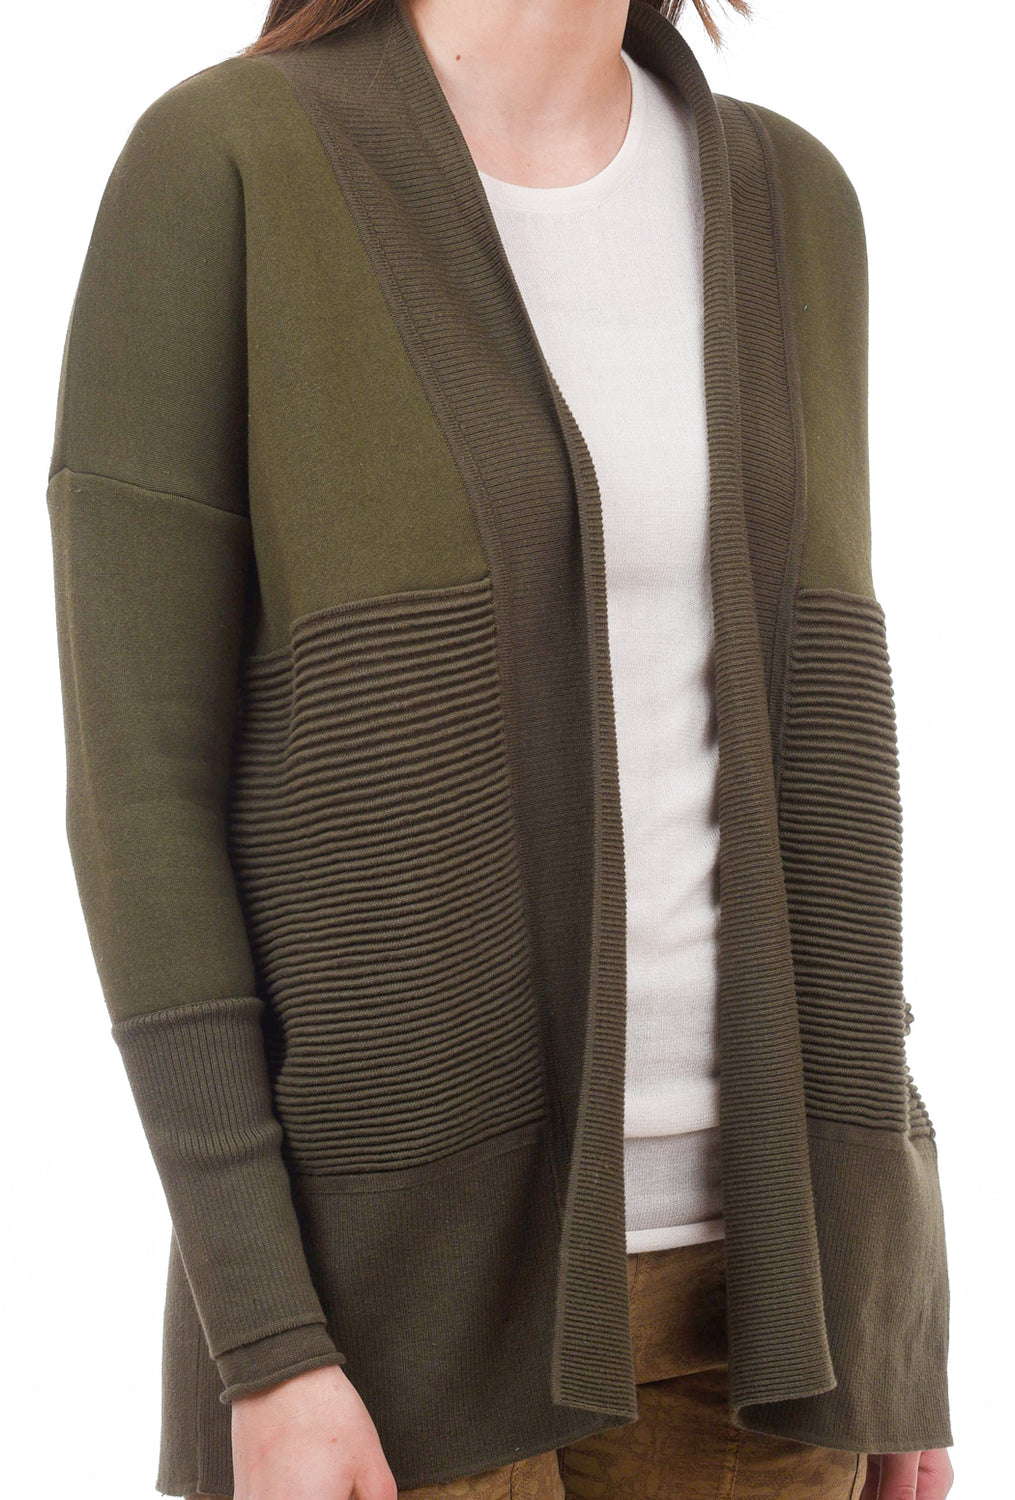 Flipside Fleece Cardigan, Military Green